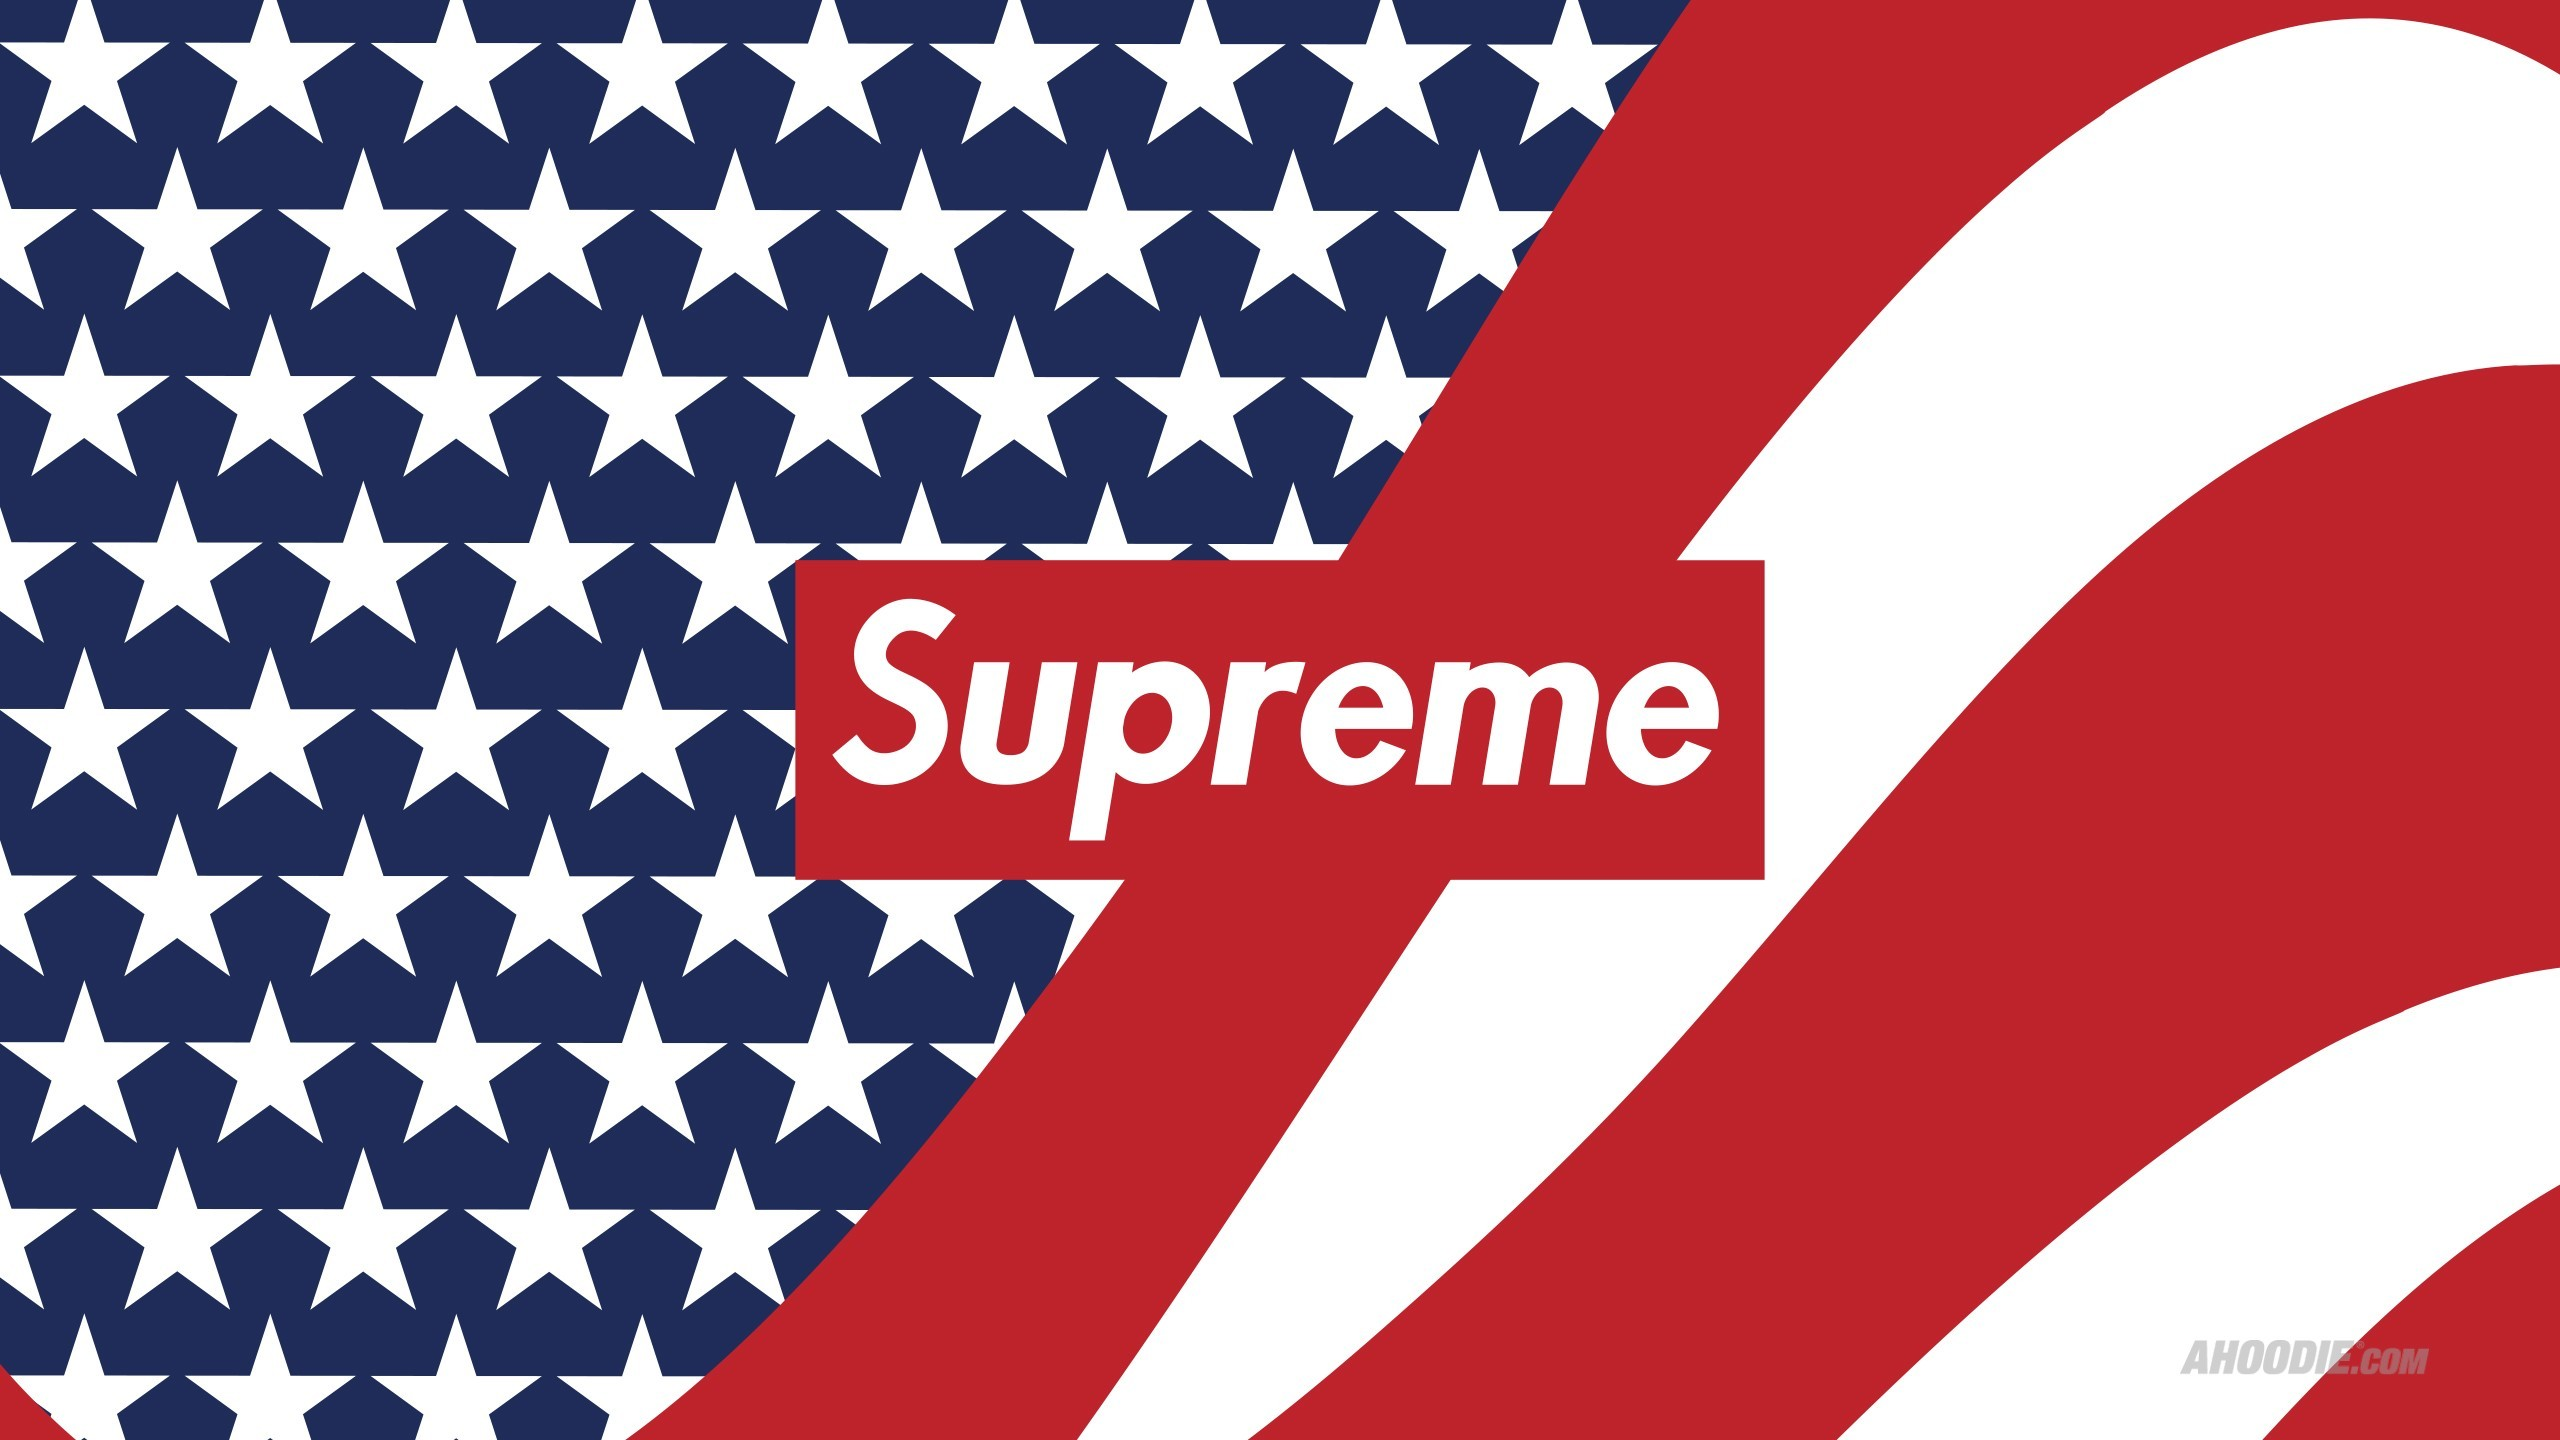 2560x1440 supreme wallpaper 2880x1800 smartphone